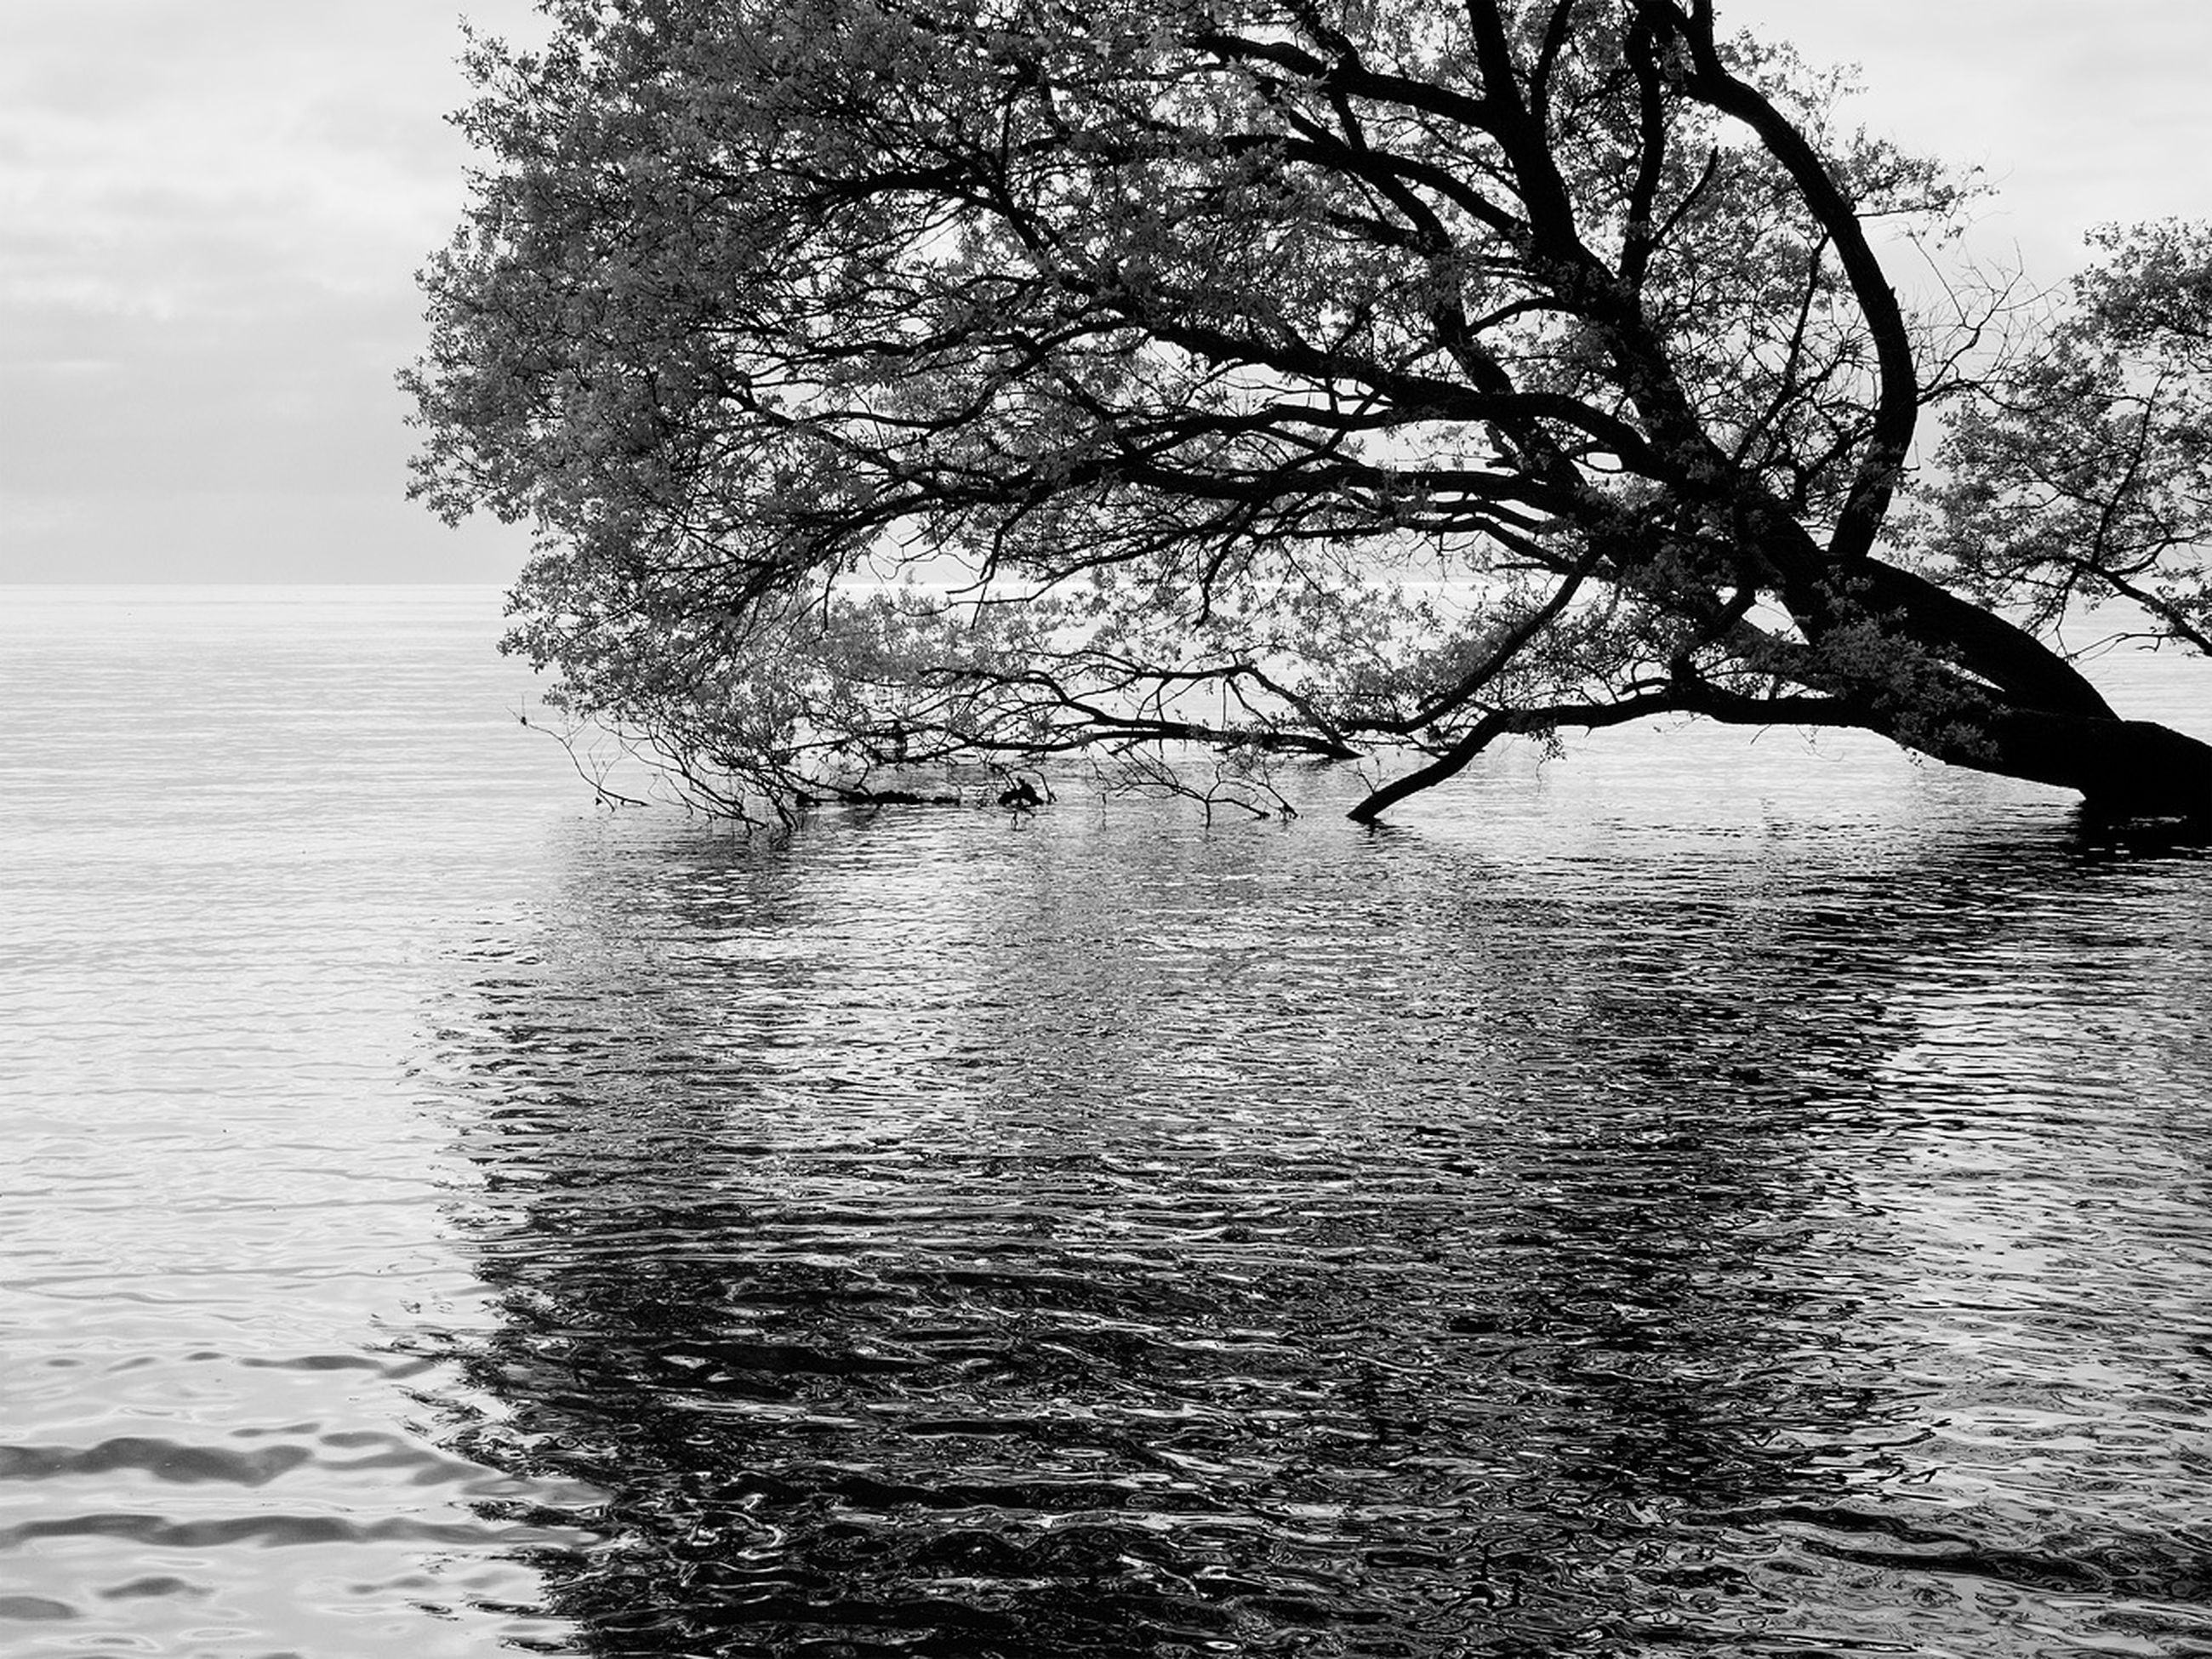 water, tree, tranquility, tranquil scene, sky, rippled, waterfront, sea, scenics, branch, nature, beauty in nature, bare tree, horizon over water, lake, idyllic, day, outdoors, no people, growth